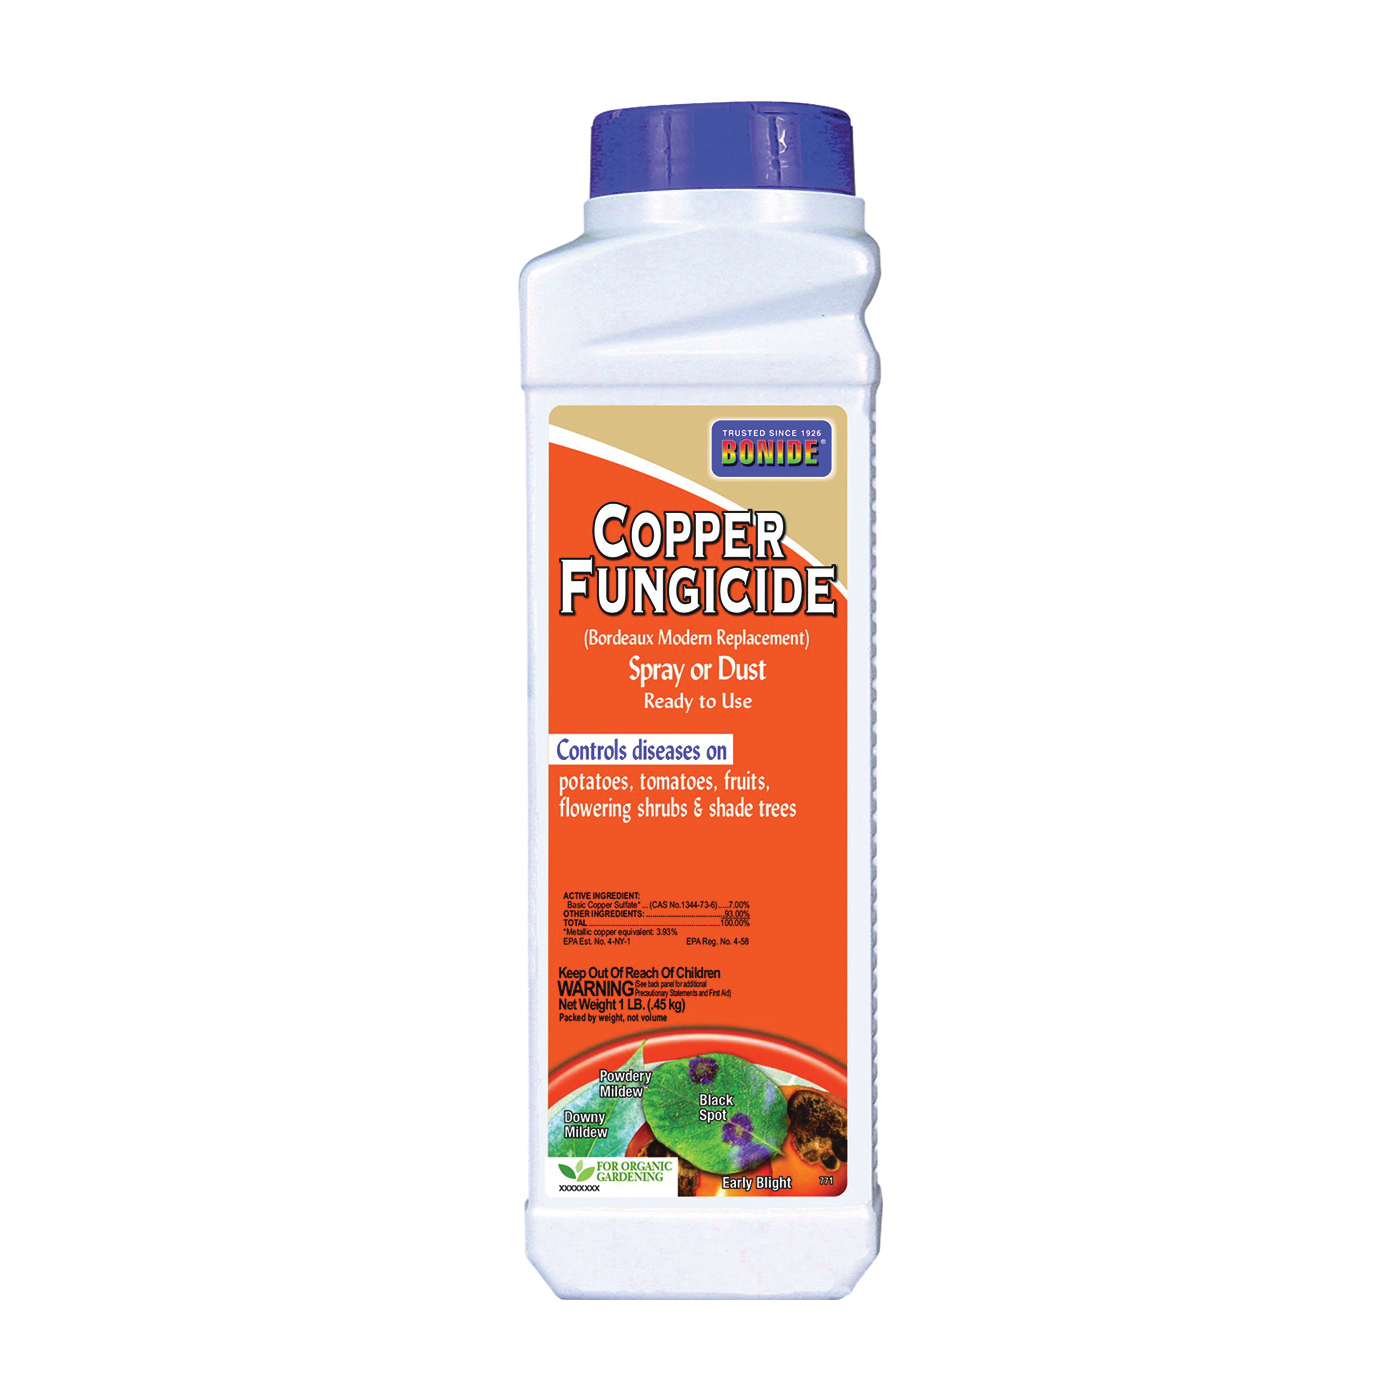 Picture of Bonide 771 Copper Fungicide Spray or Dust, Solid, Blue/Green, 1 lb Package, Bottle